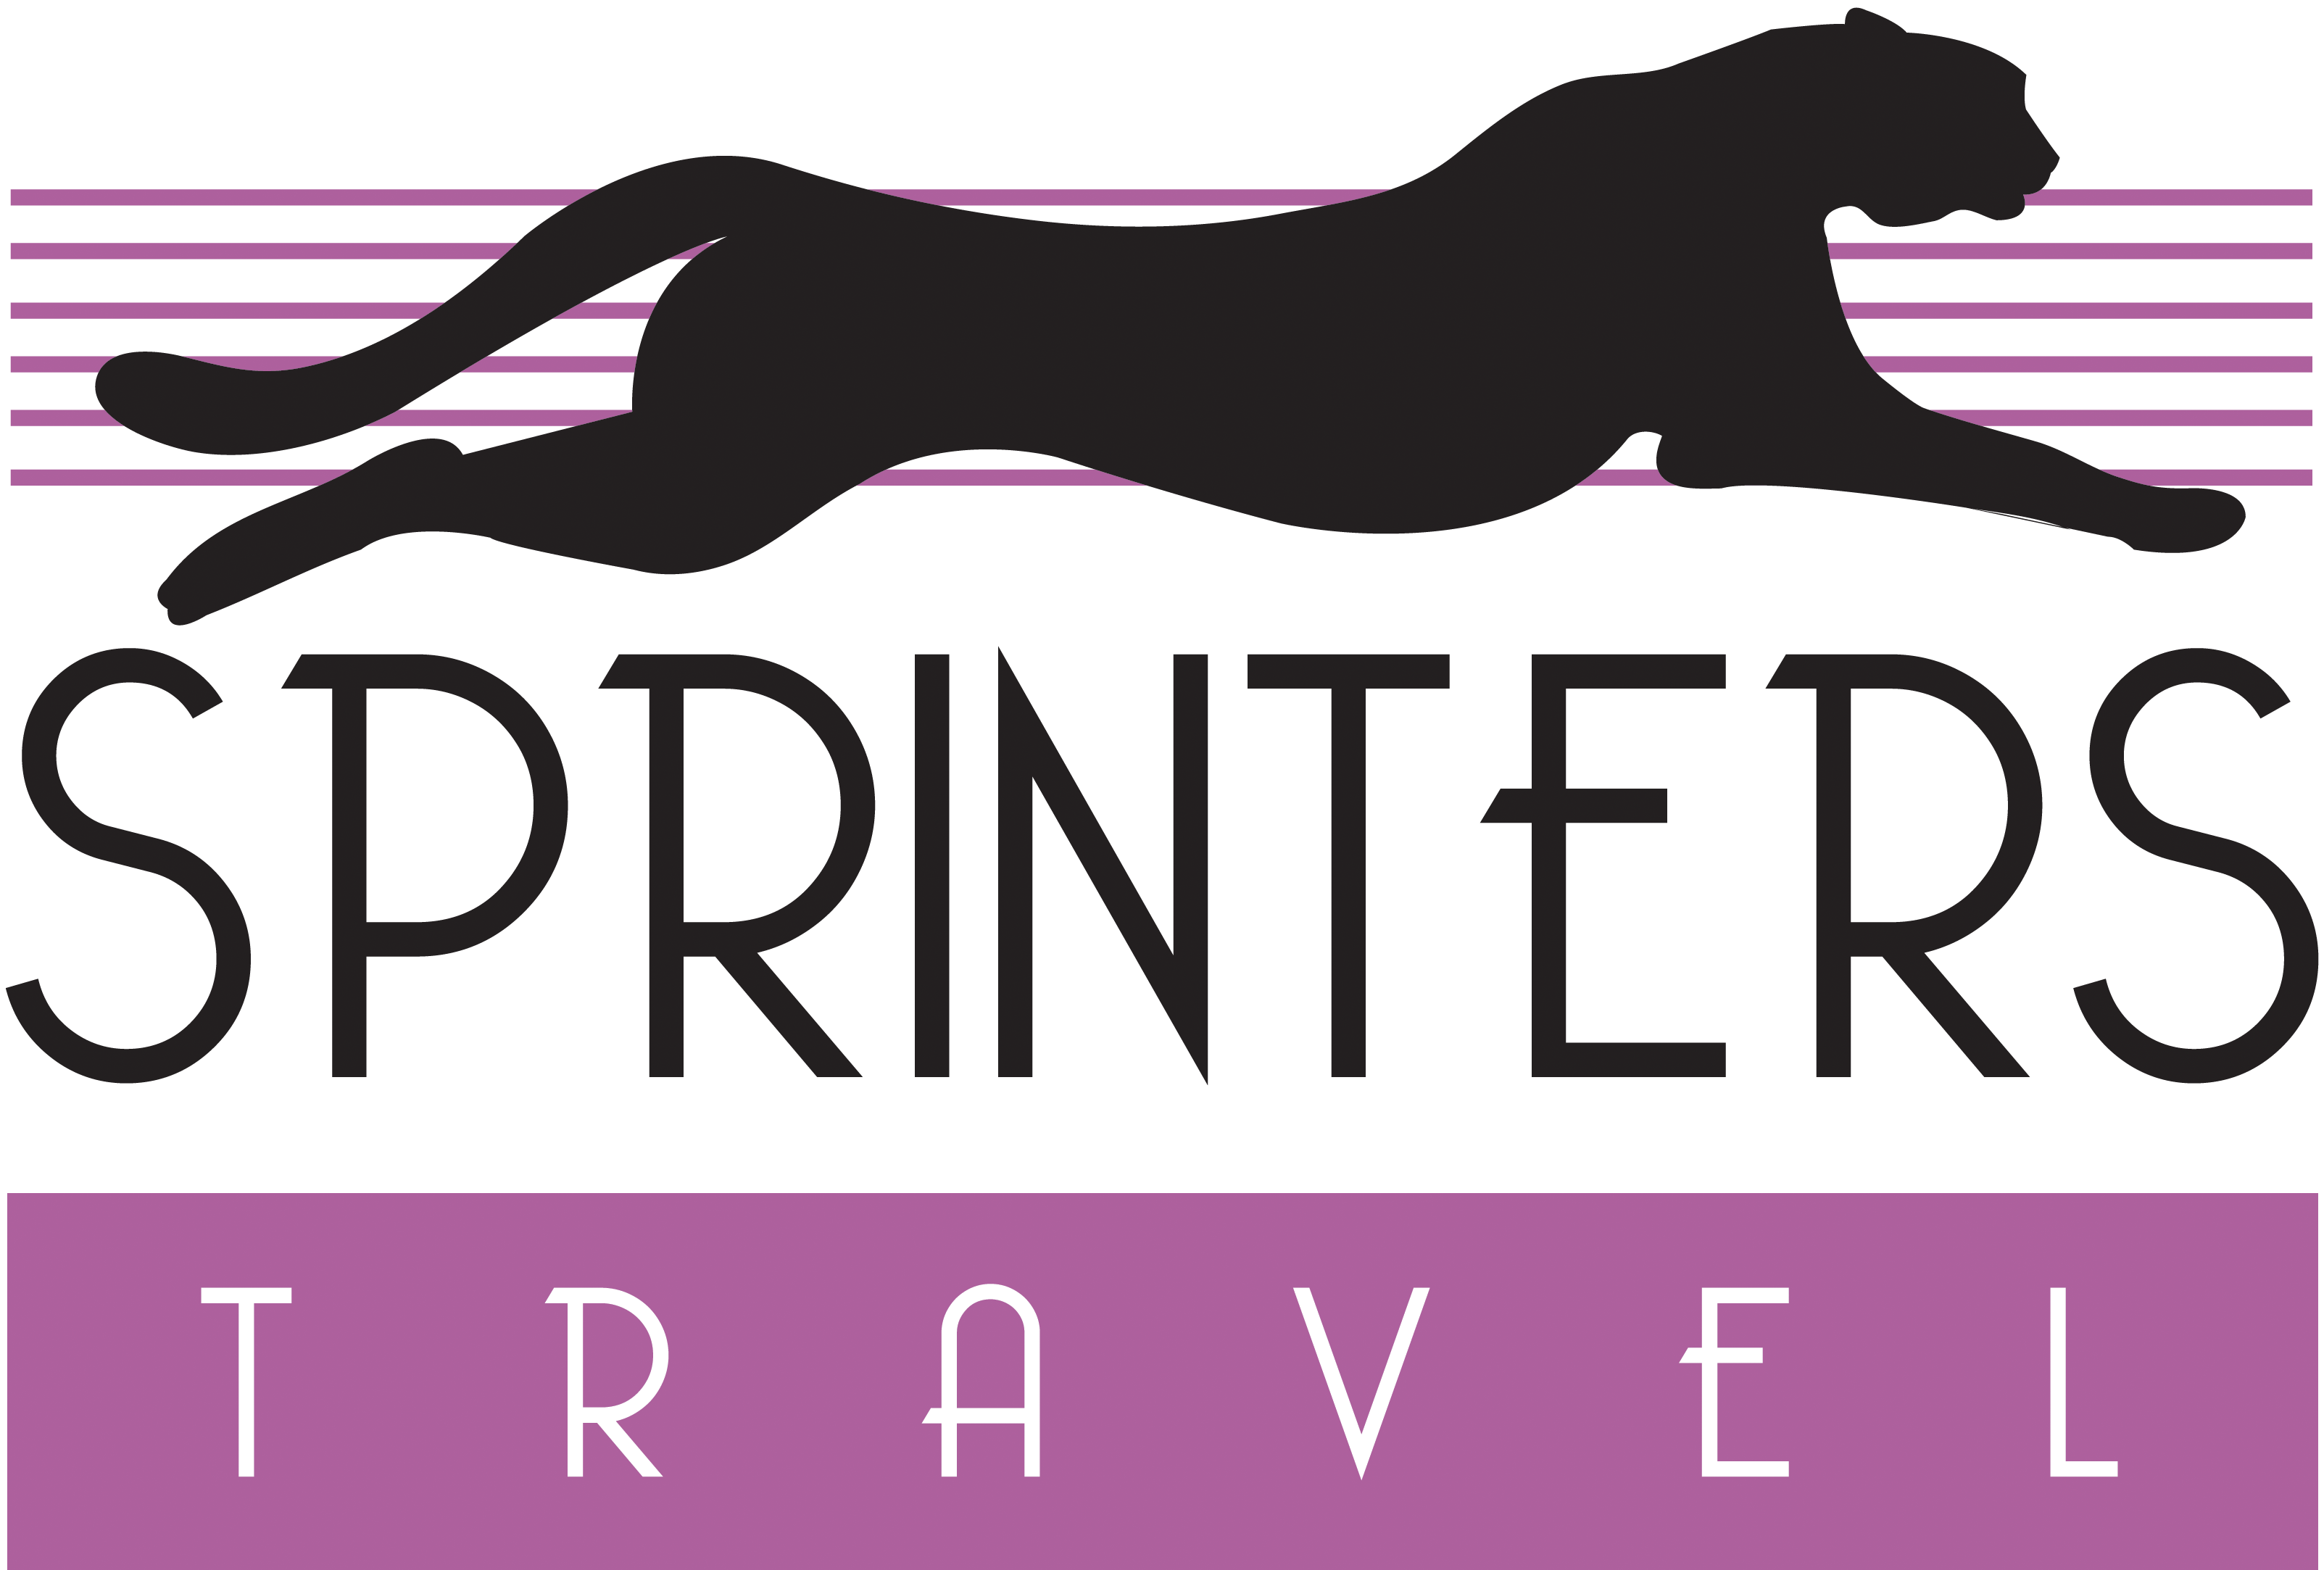 Sprinters Travel | Viviane, Author at Sprinters Travel